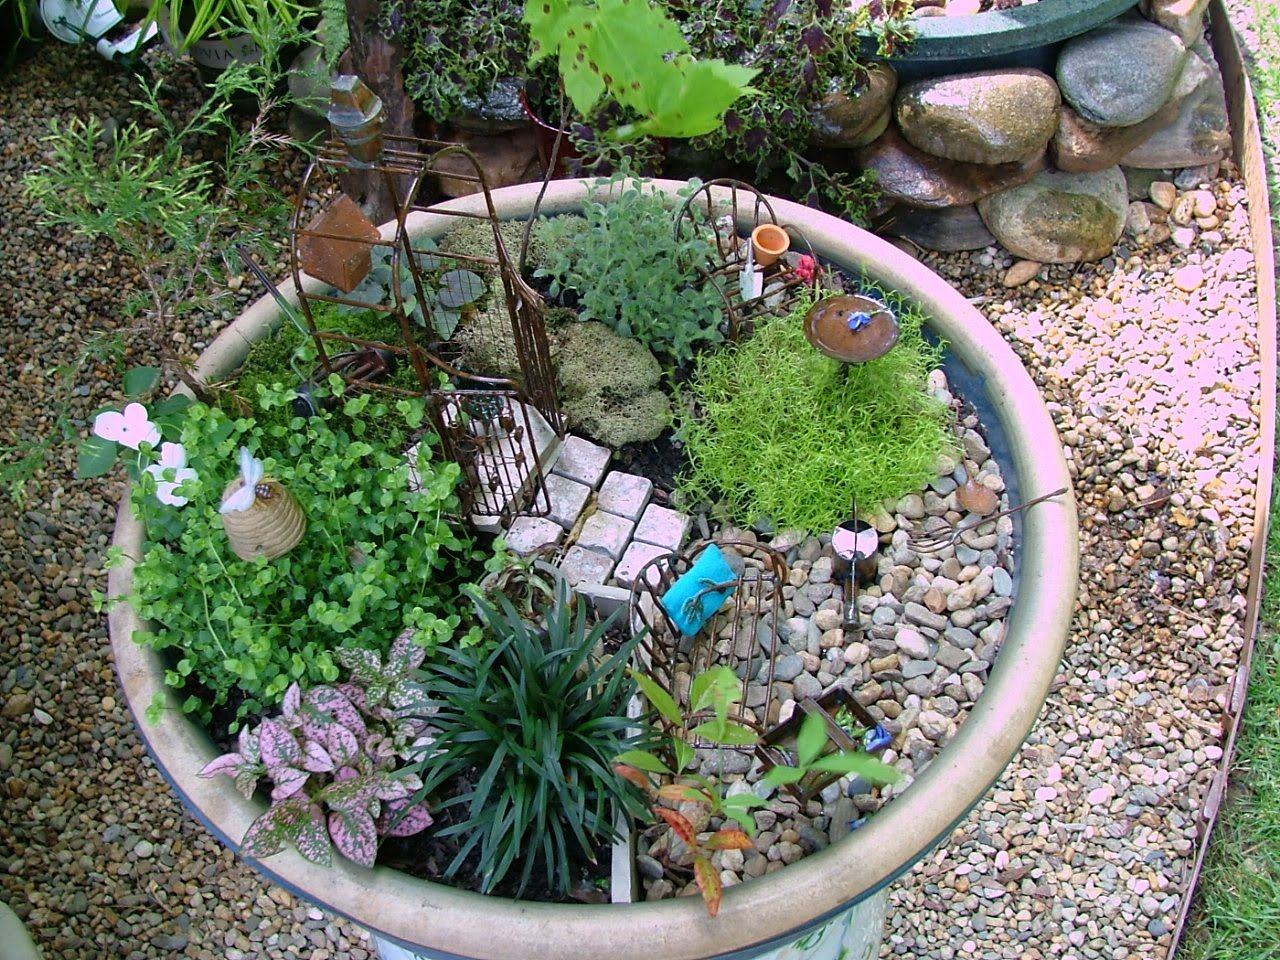 the tiny bee skep, the bird bath, the clay pot and trowel!  no detail left out.